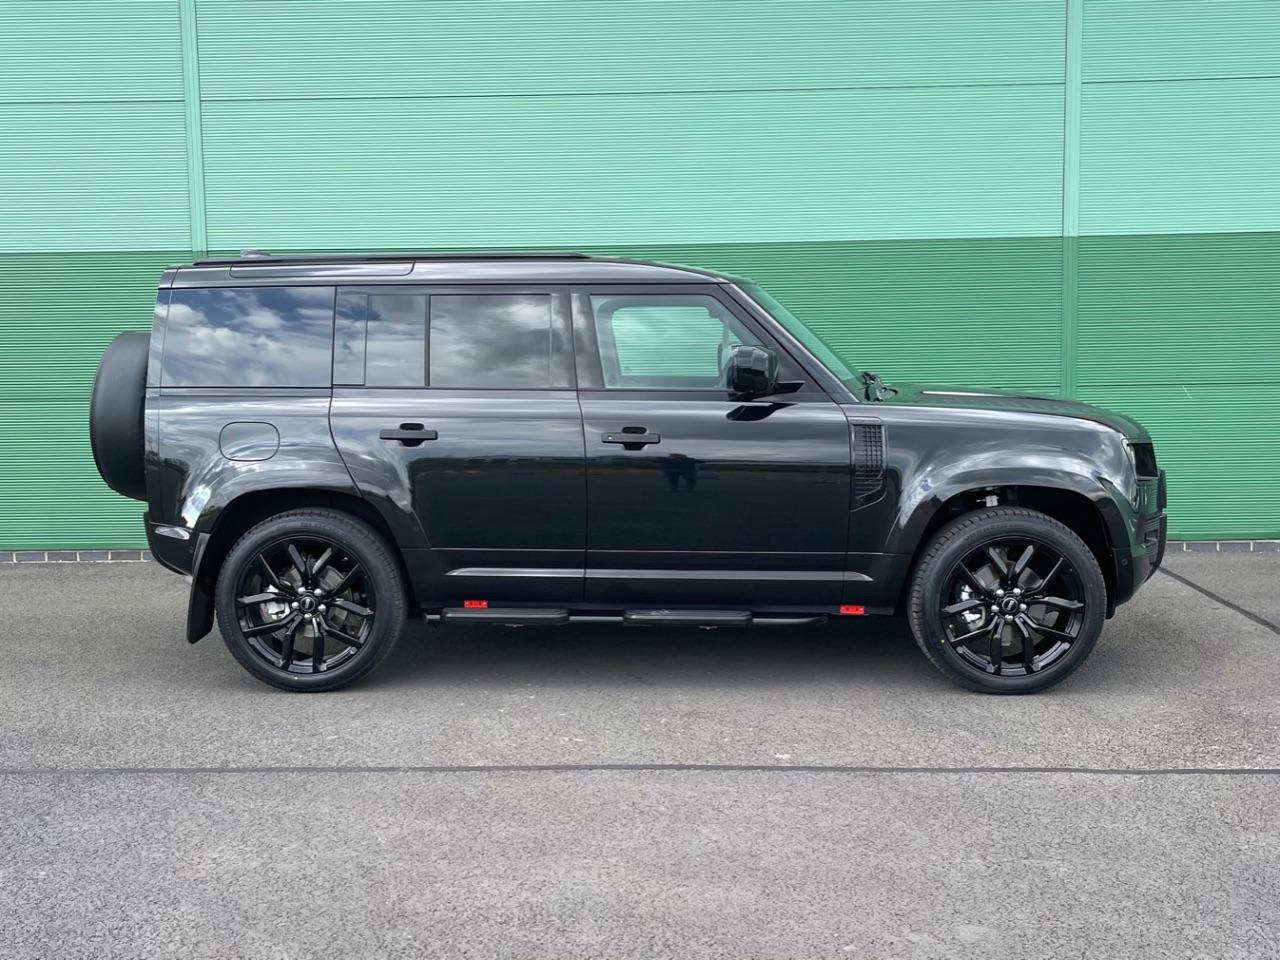 2021 Land Rover Defender Seeker SKR 3.0 D250 Hard Top commercial  Auto with rear seats and conversion Order yours Now